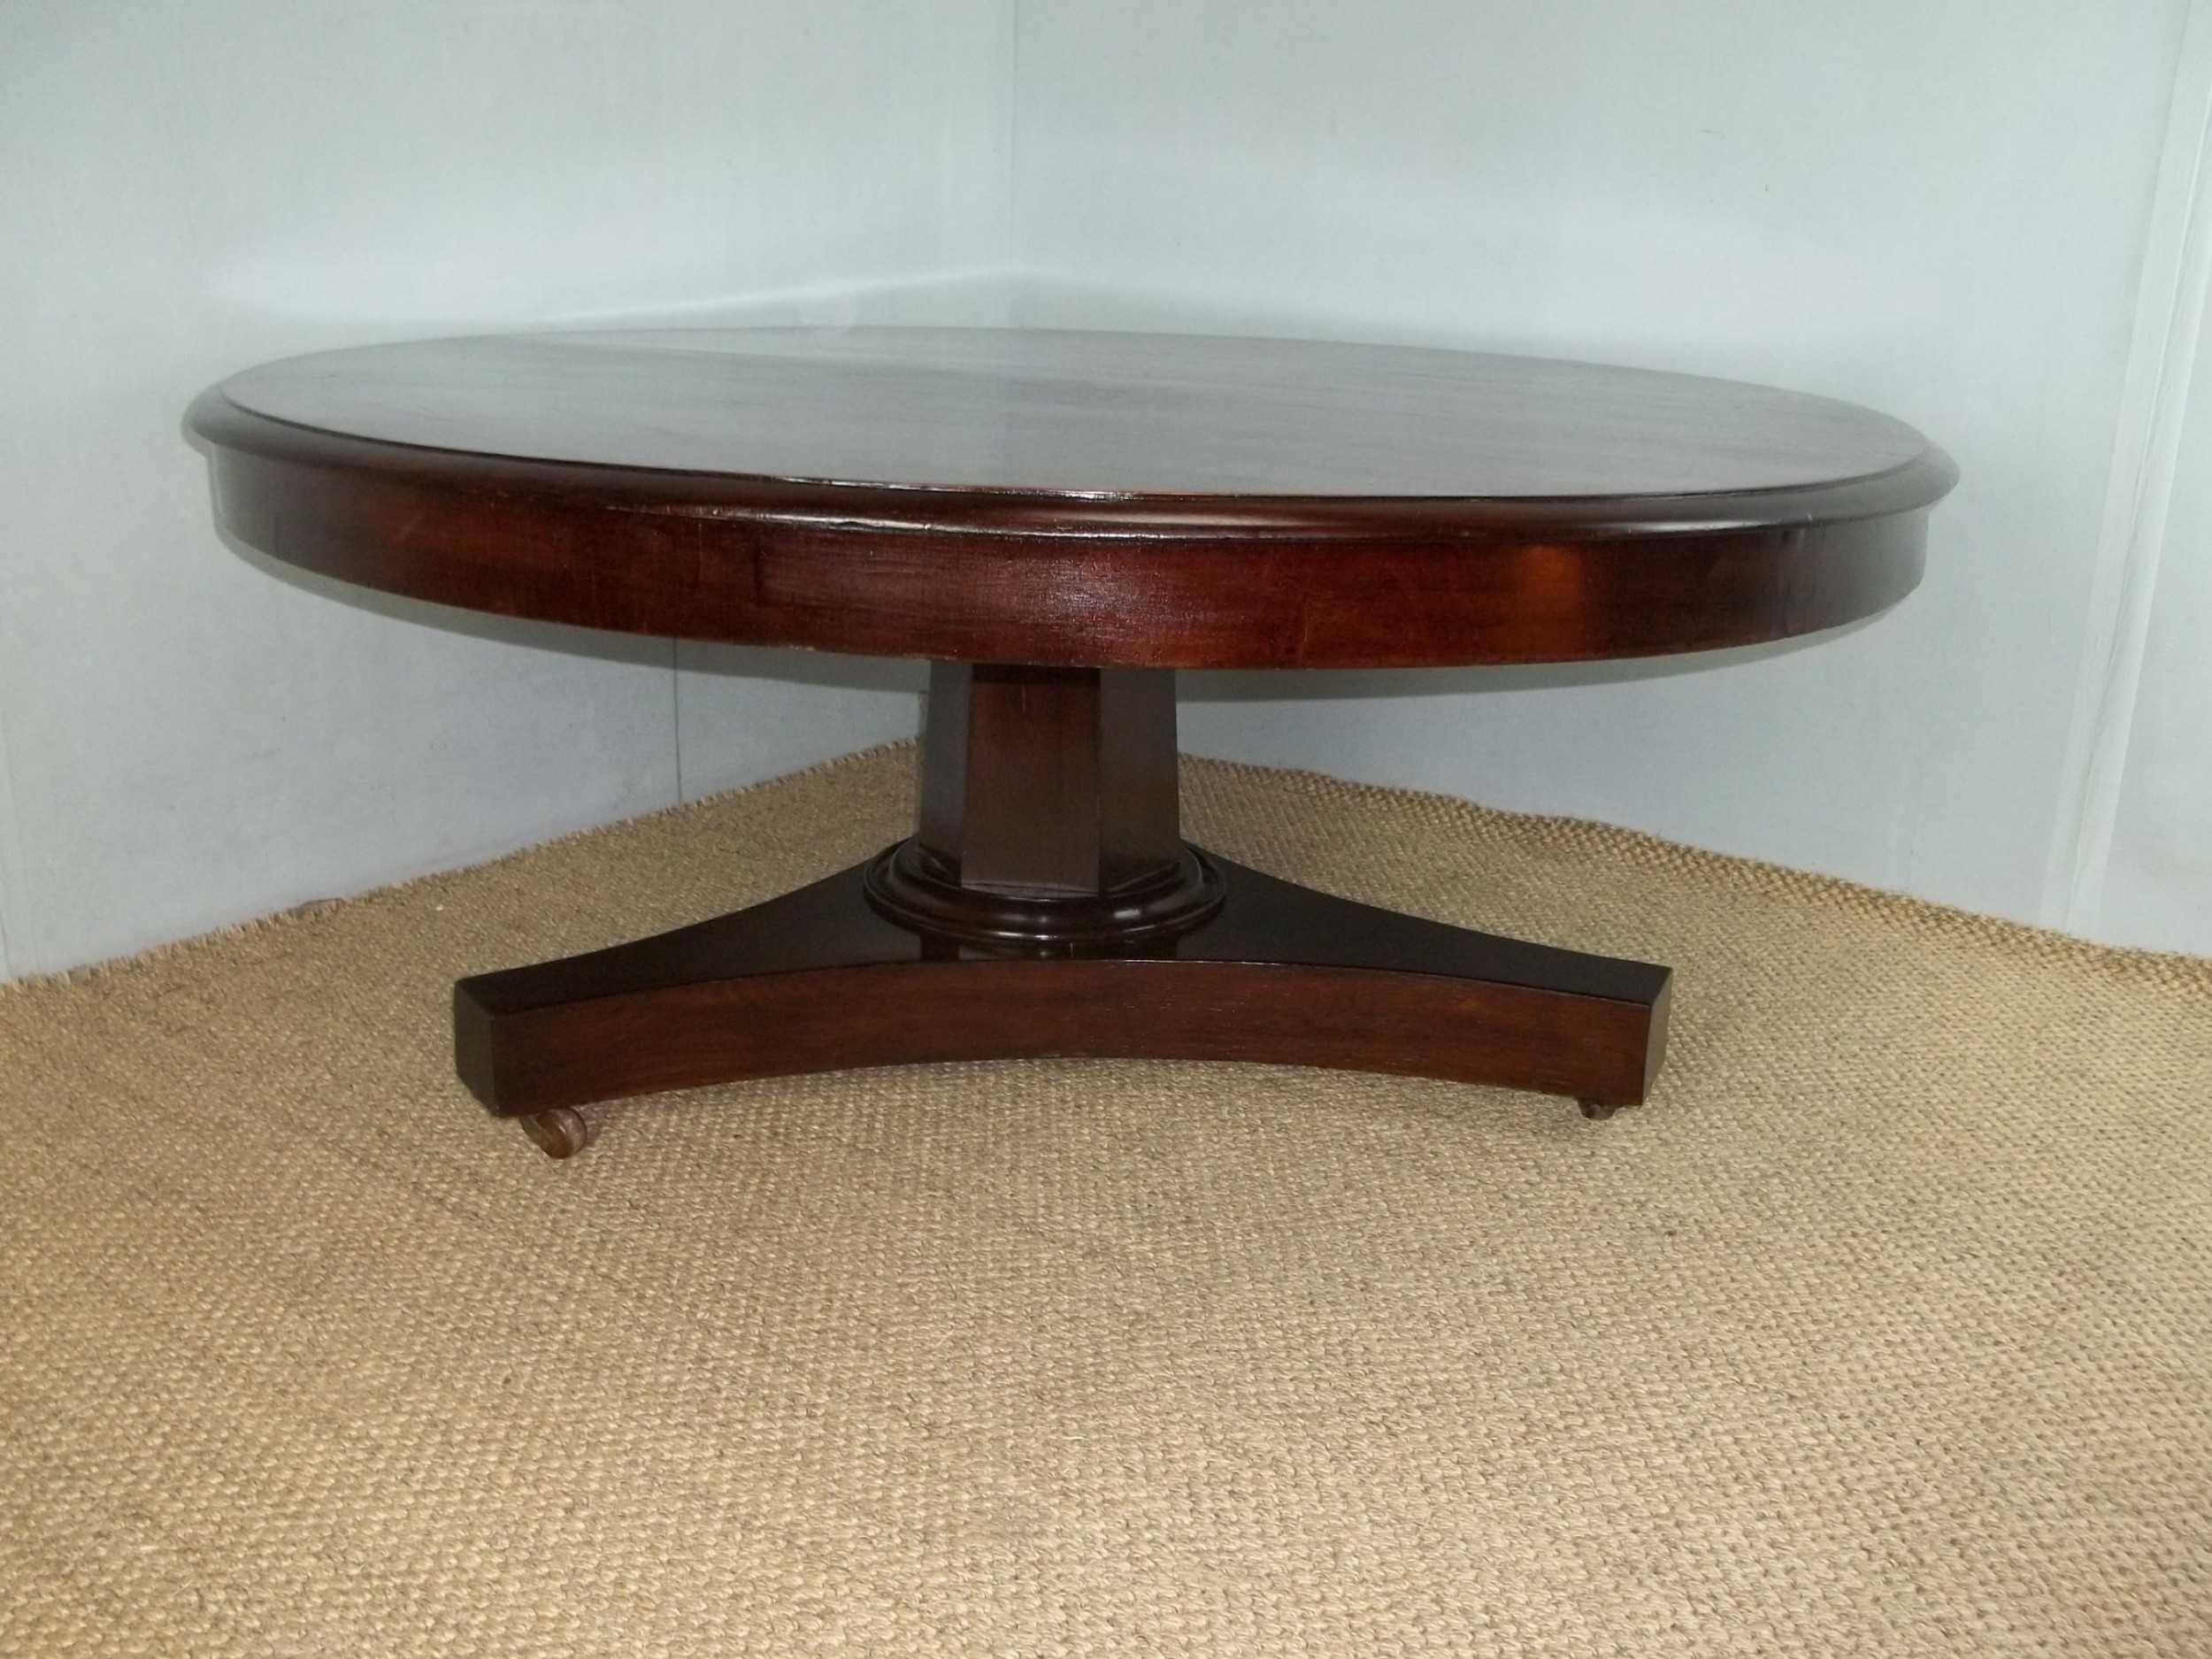 antique 19th century circular round coffee table c1860